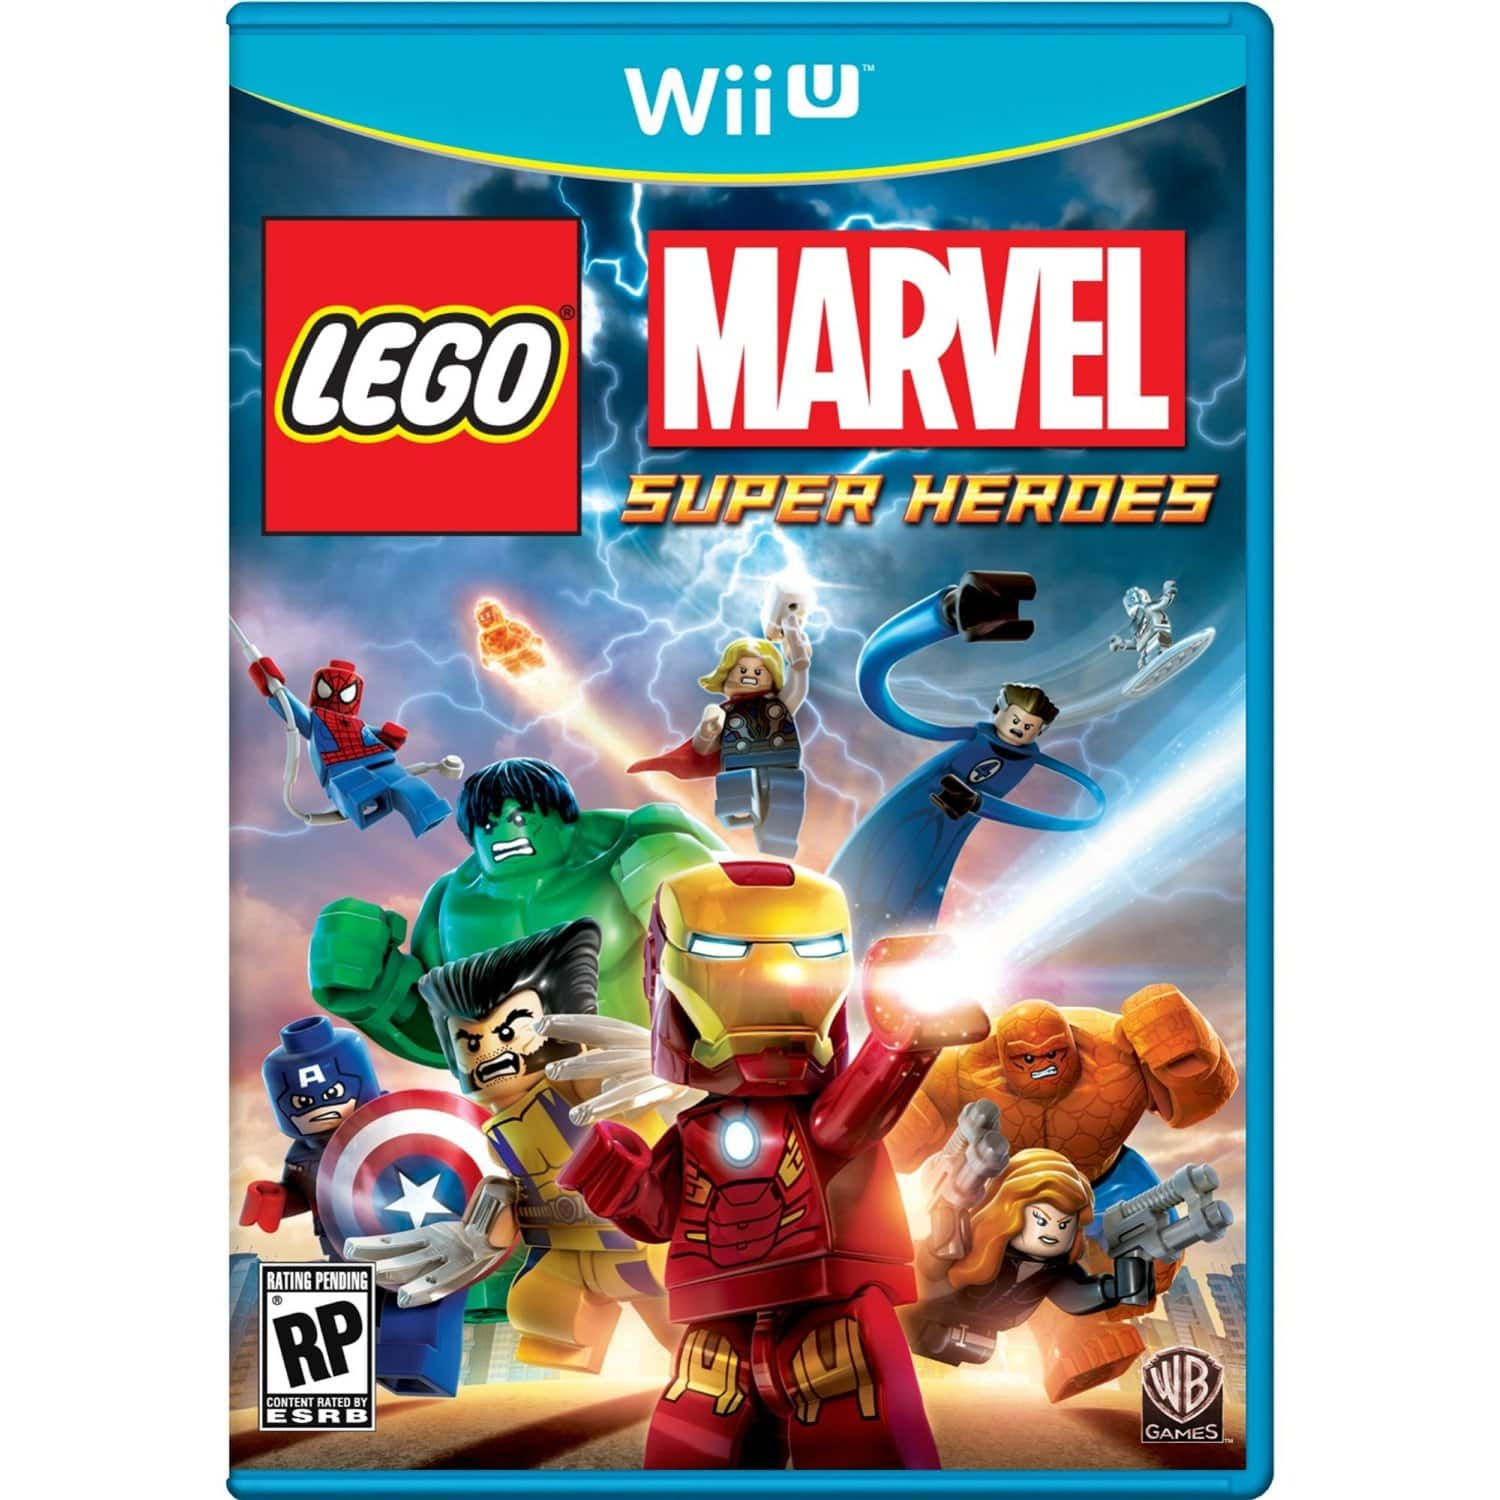 Lego Marvel Super Heroes (Nintendo Wii U, 3DS, PS3 or PC Digital Download)  $20